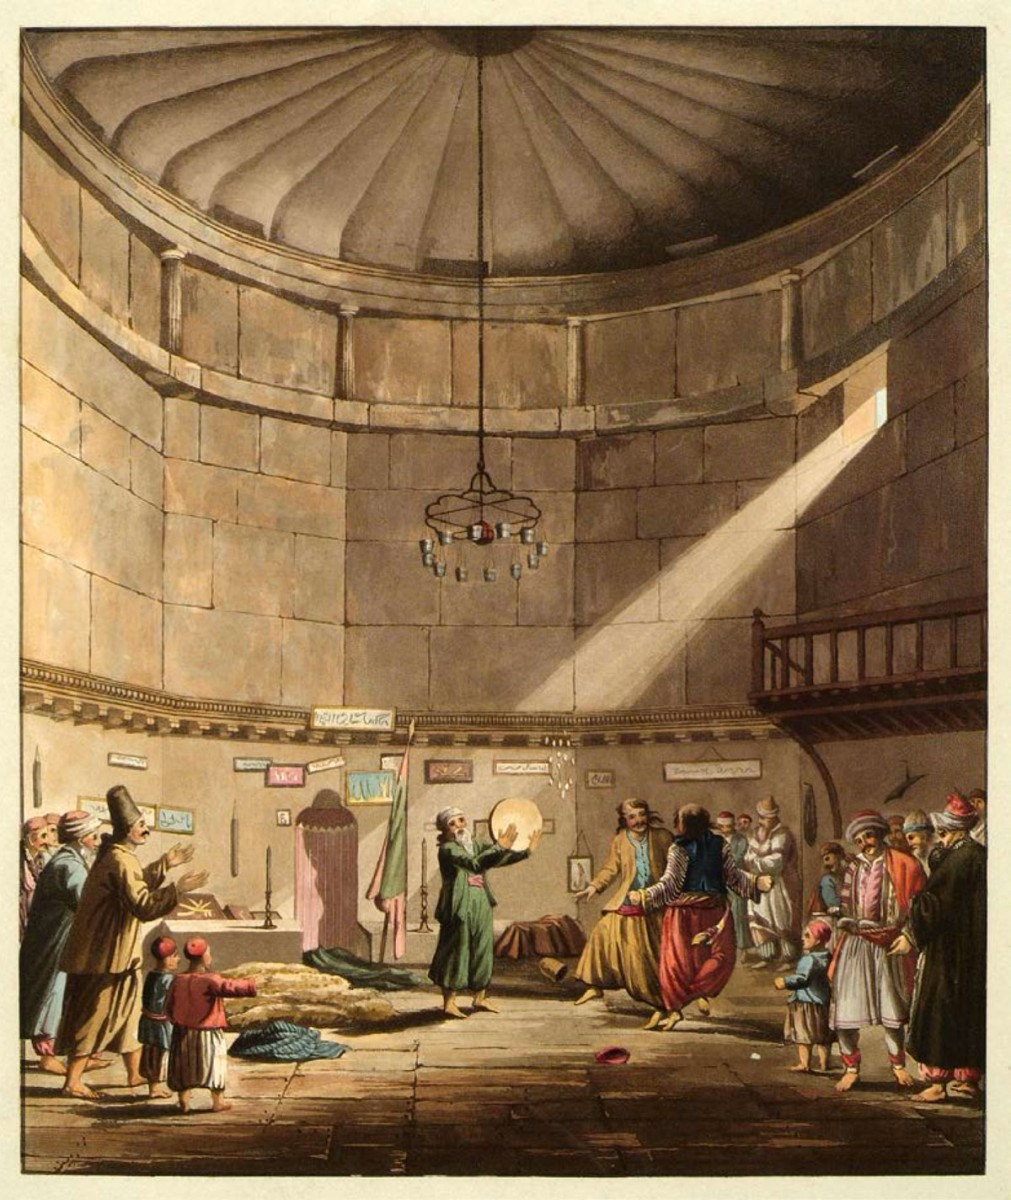 Dance of the Derwisches in the Tower of the Winds. Source: Edward Dodwell, Views in Greece (London, 1819).